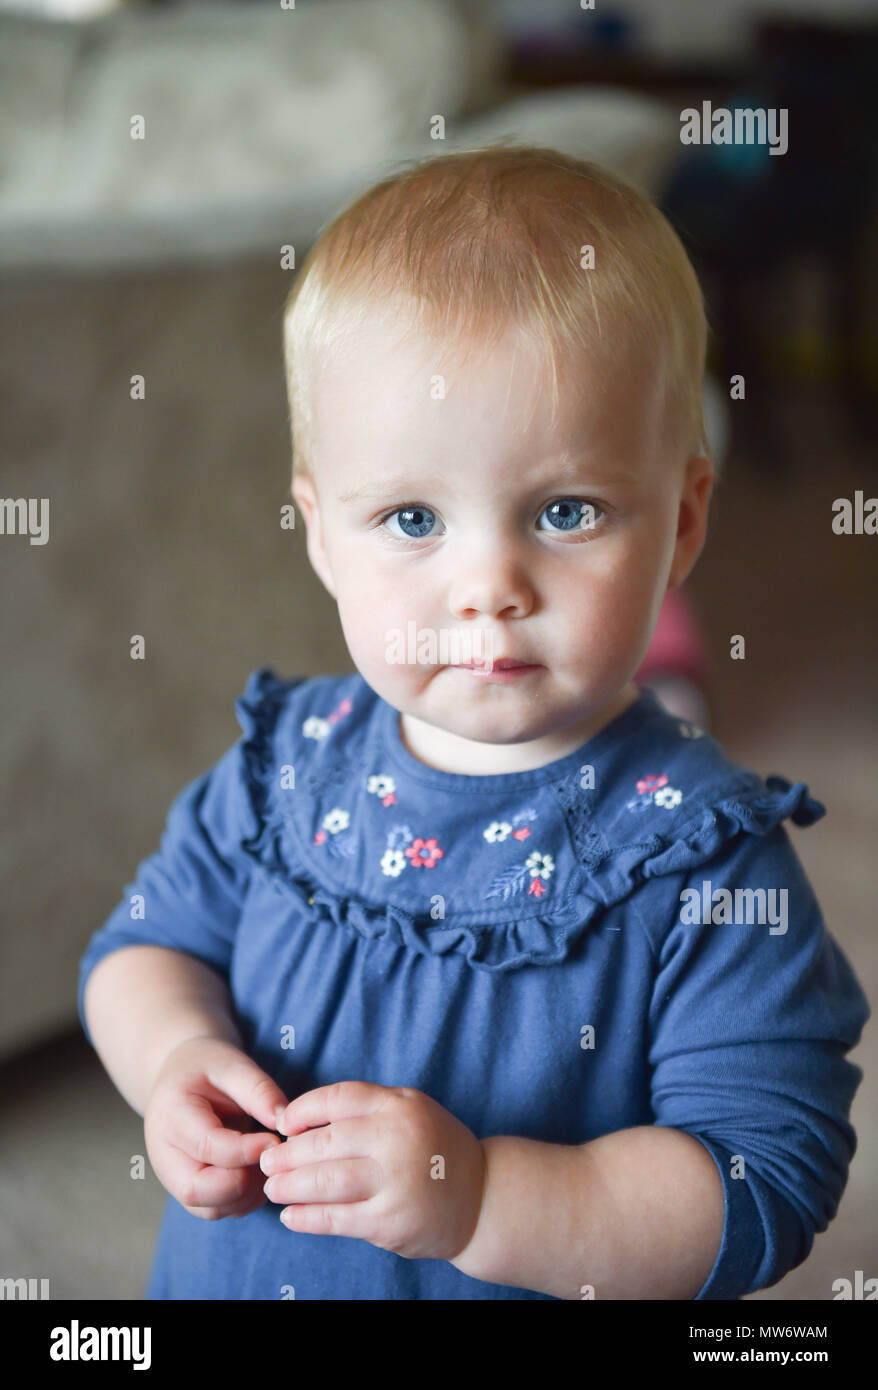 Beautiful Young baby girl toddler at 18 months old with short blonde hair - model released Photograph taken by Simon Dack